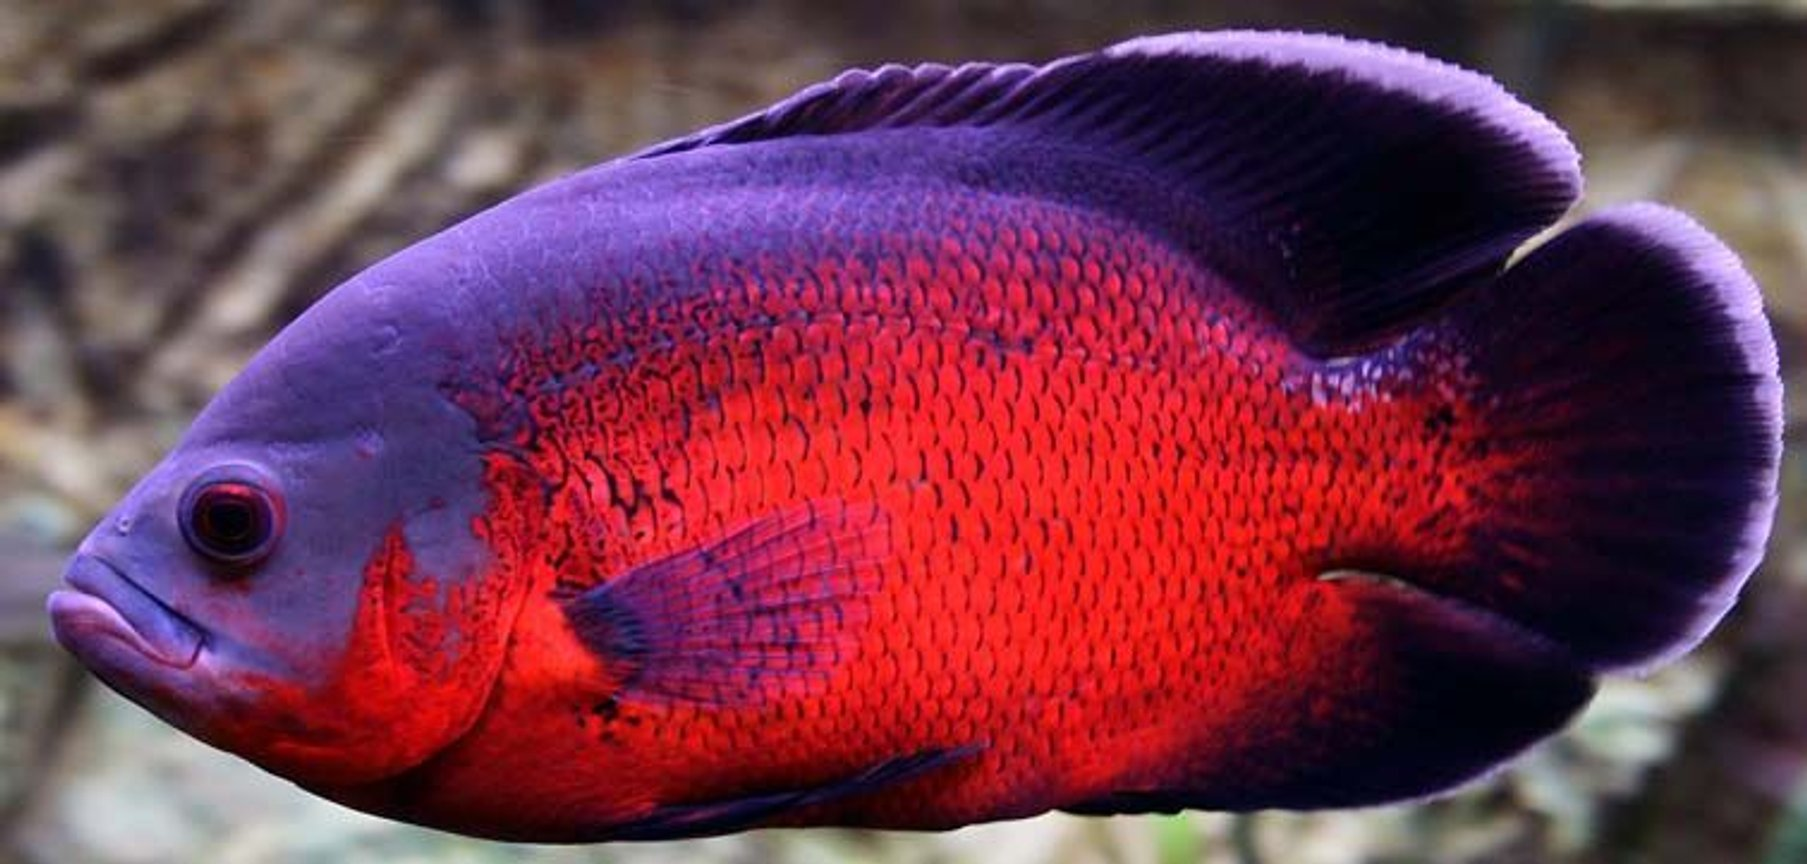 freshwater fish - astronotus ocellatus - red oscar stocking in 265 gallons tank